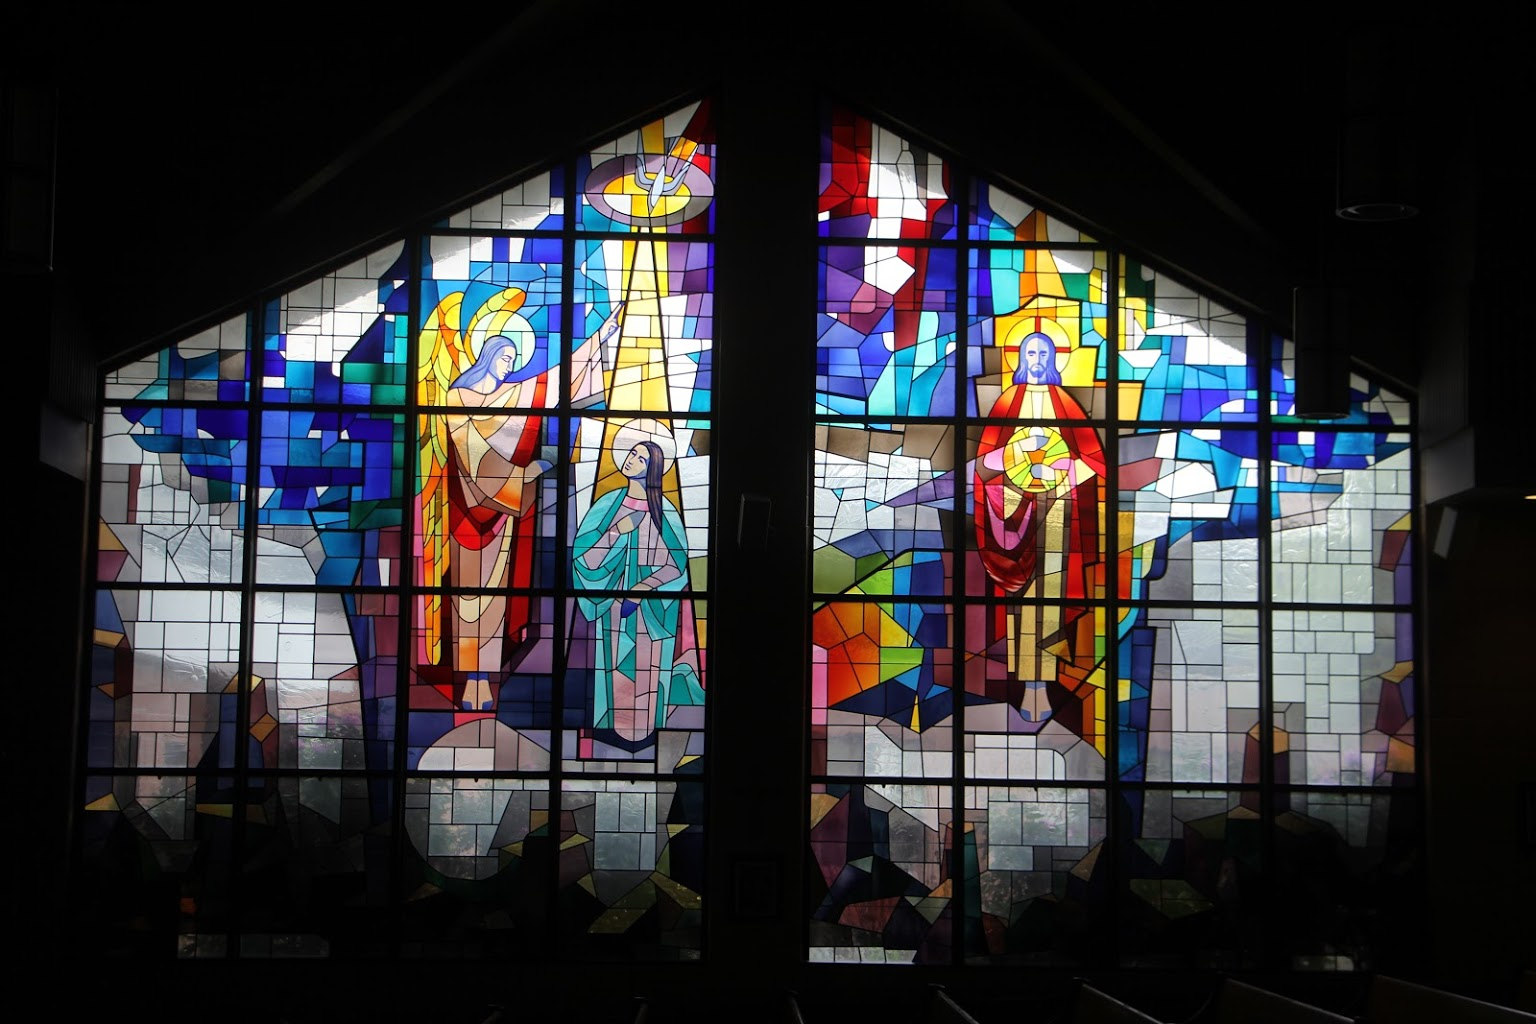 stained glass window at Church of St. Joan of Arc - See-Inside Place of Worship, Marlton, NJ